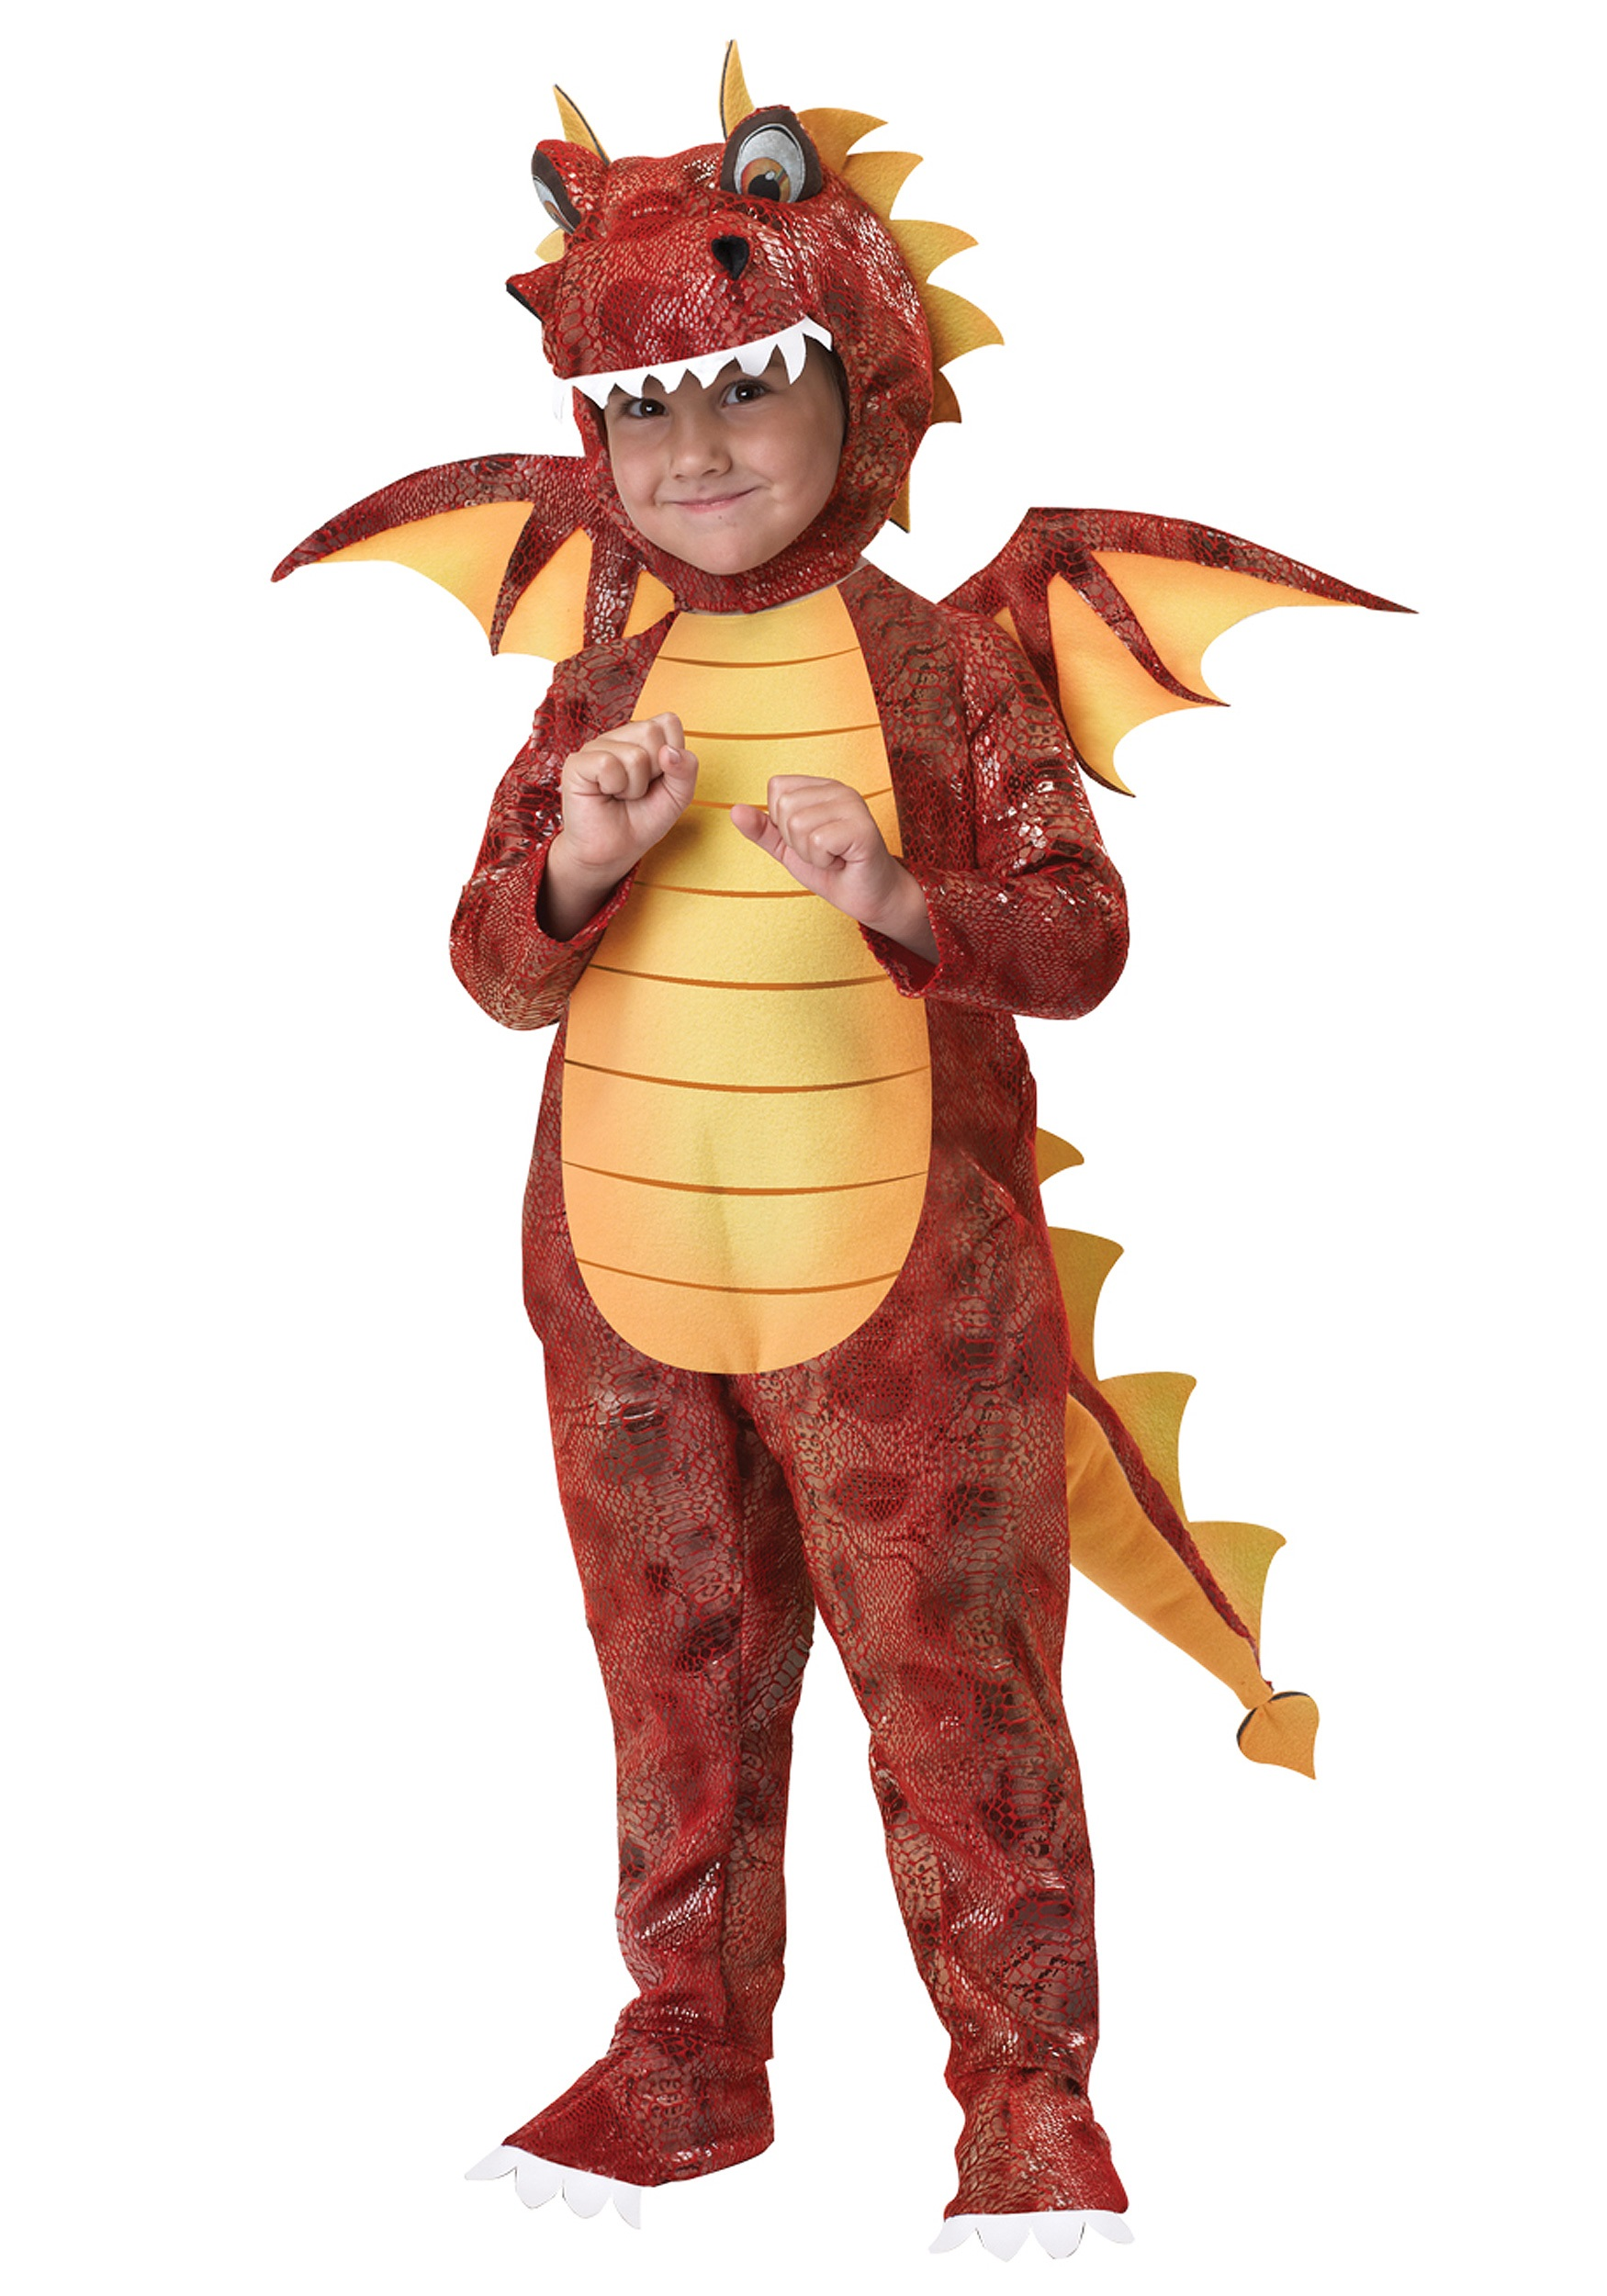 Toddler Medieval Fire Dragon Costume  sc 1 st  Halloween Costume & Toddler Medieval Fire Dragon Costume - Kids Dragon Costumes